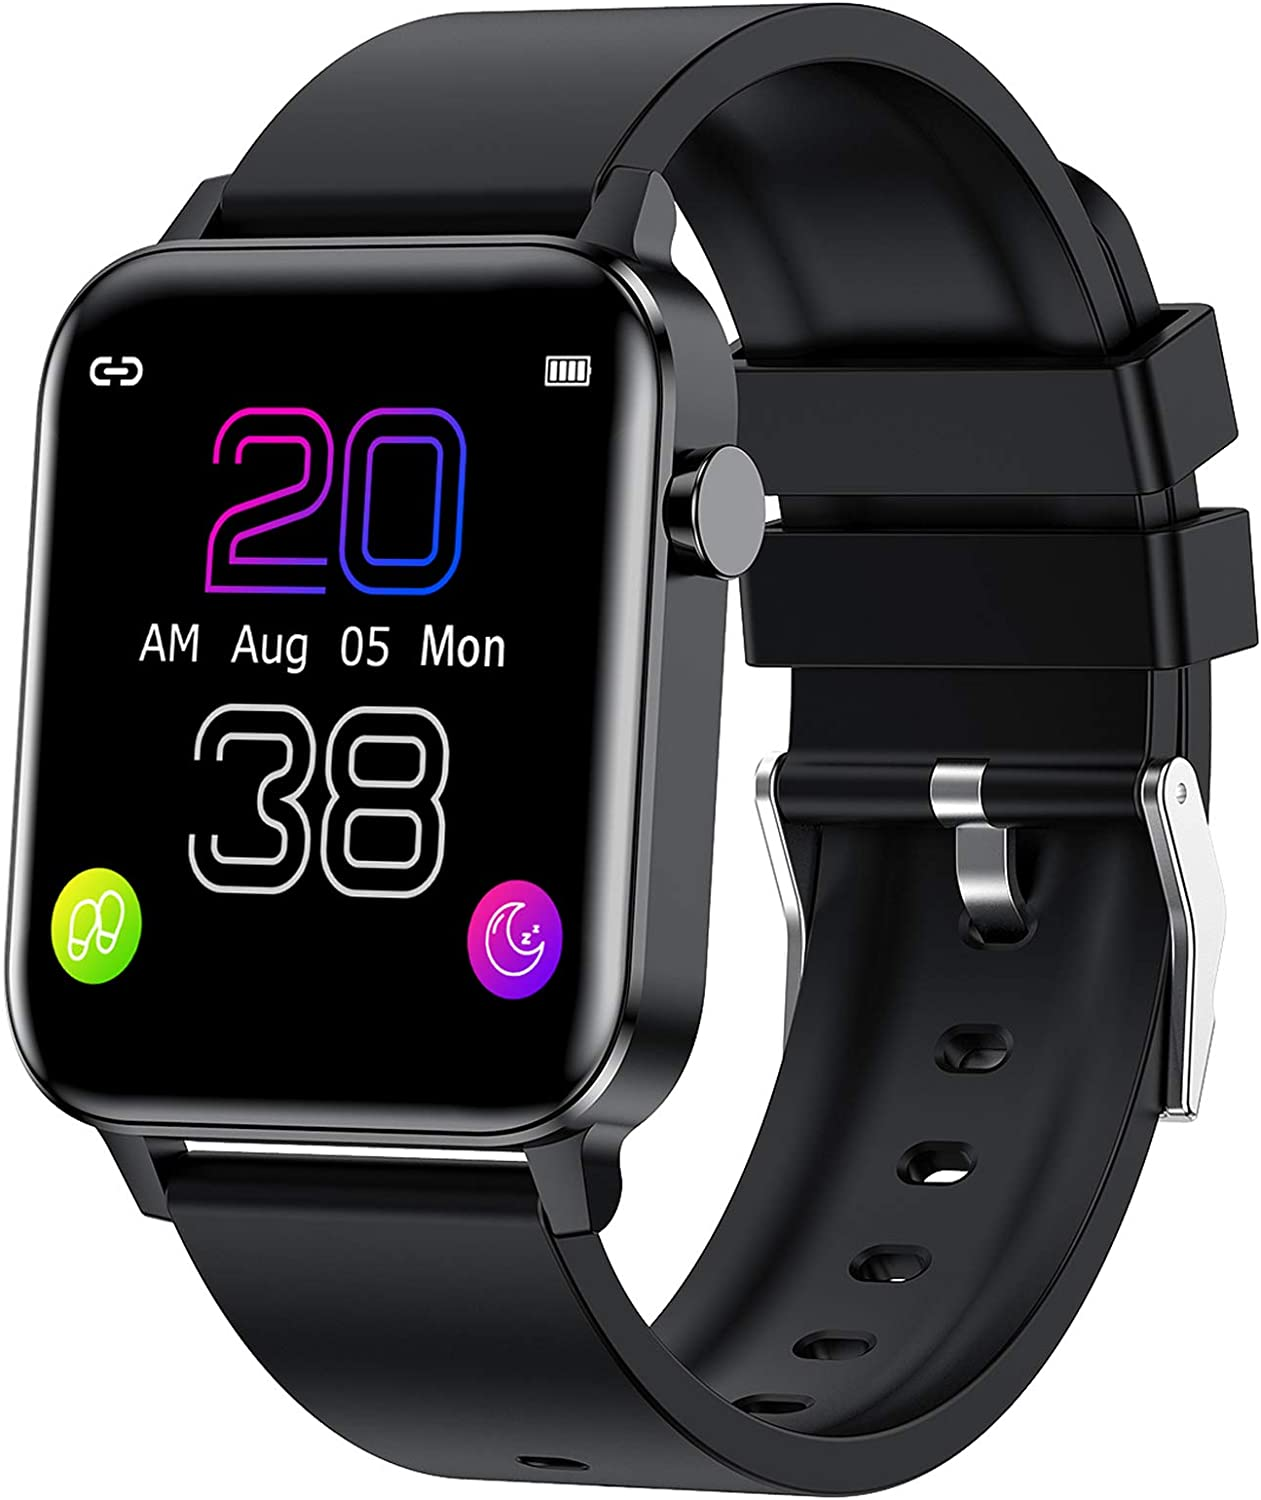 """Smart Watch, HAOQIN VS2 Activity Fitness Tracker with Heart Rate Monitor, IP68 Waterproof Pedometer, 1.4"""" Touch Screen Step Counter, Sleep Monitor, for Men Women, Compatible with iphone Android phones"""